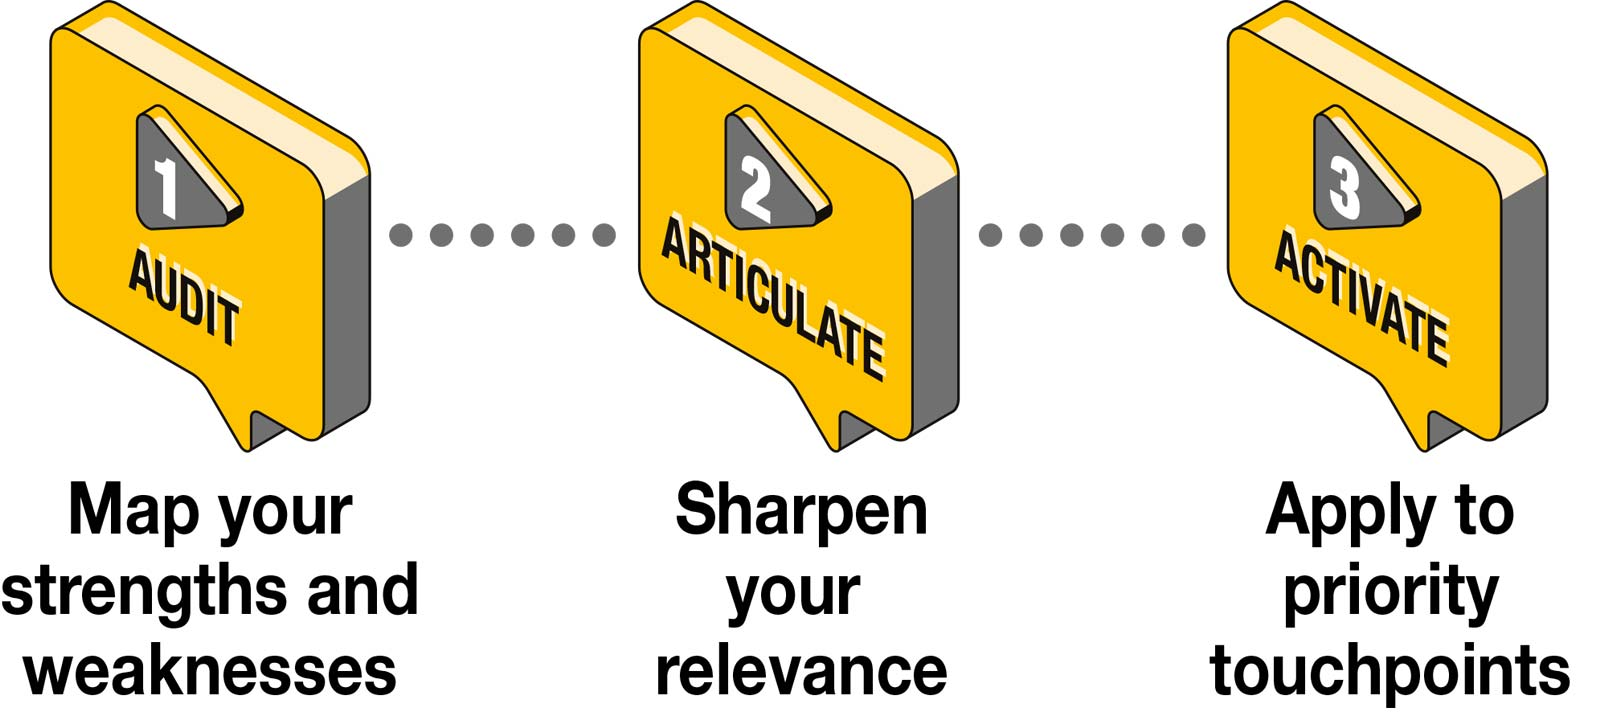 Audit Articulate Activate graphic